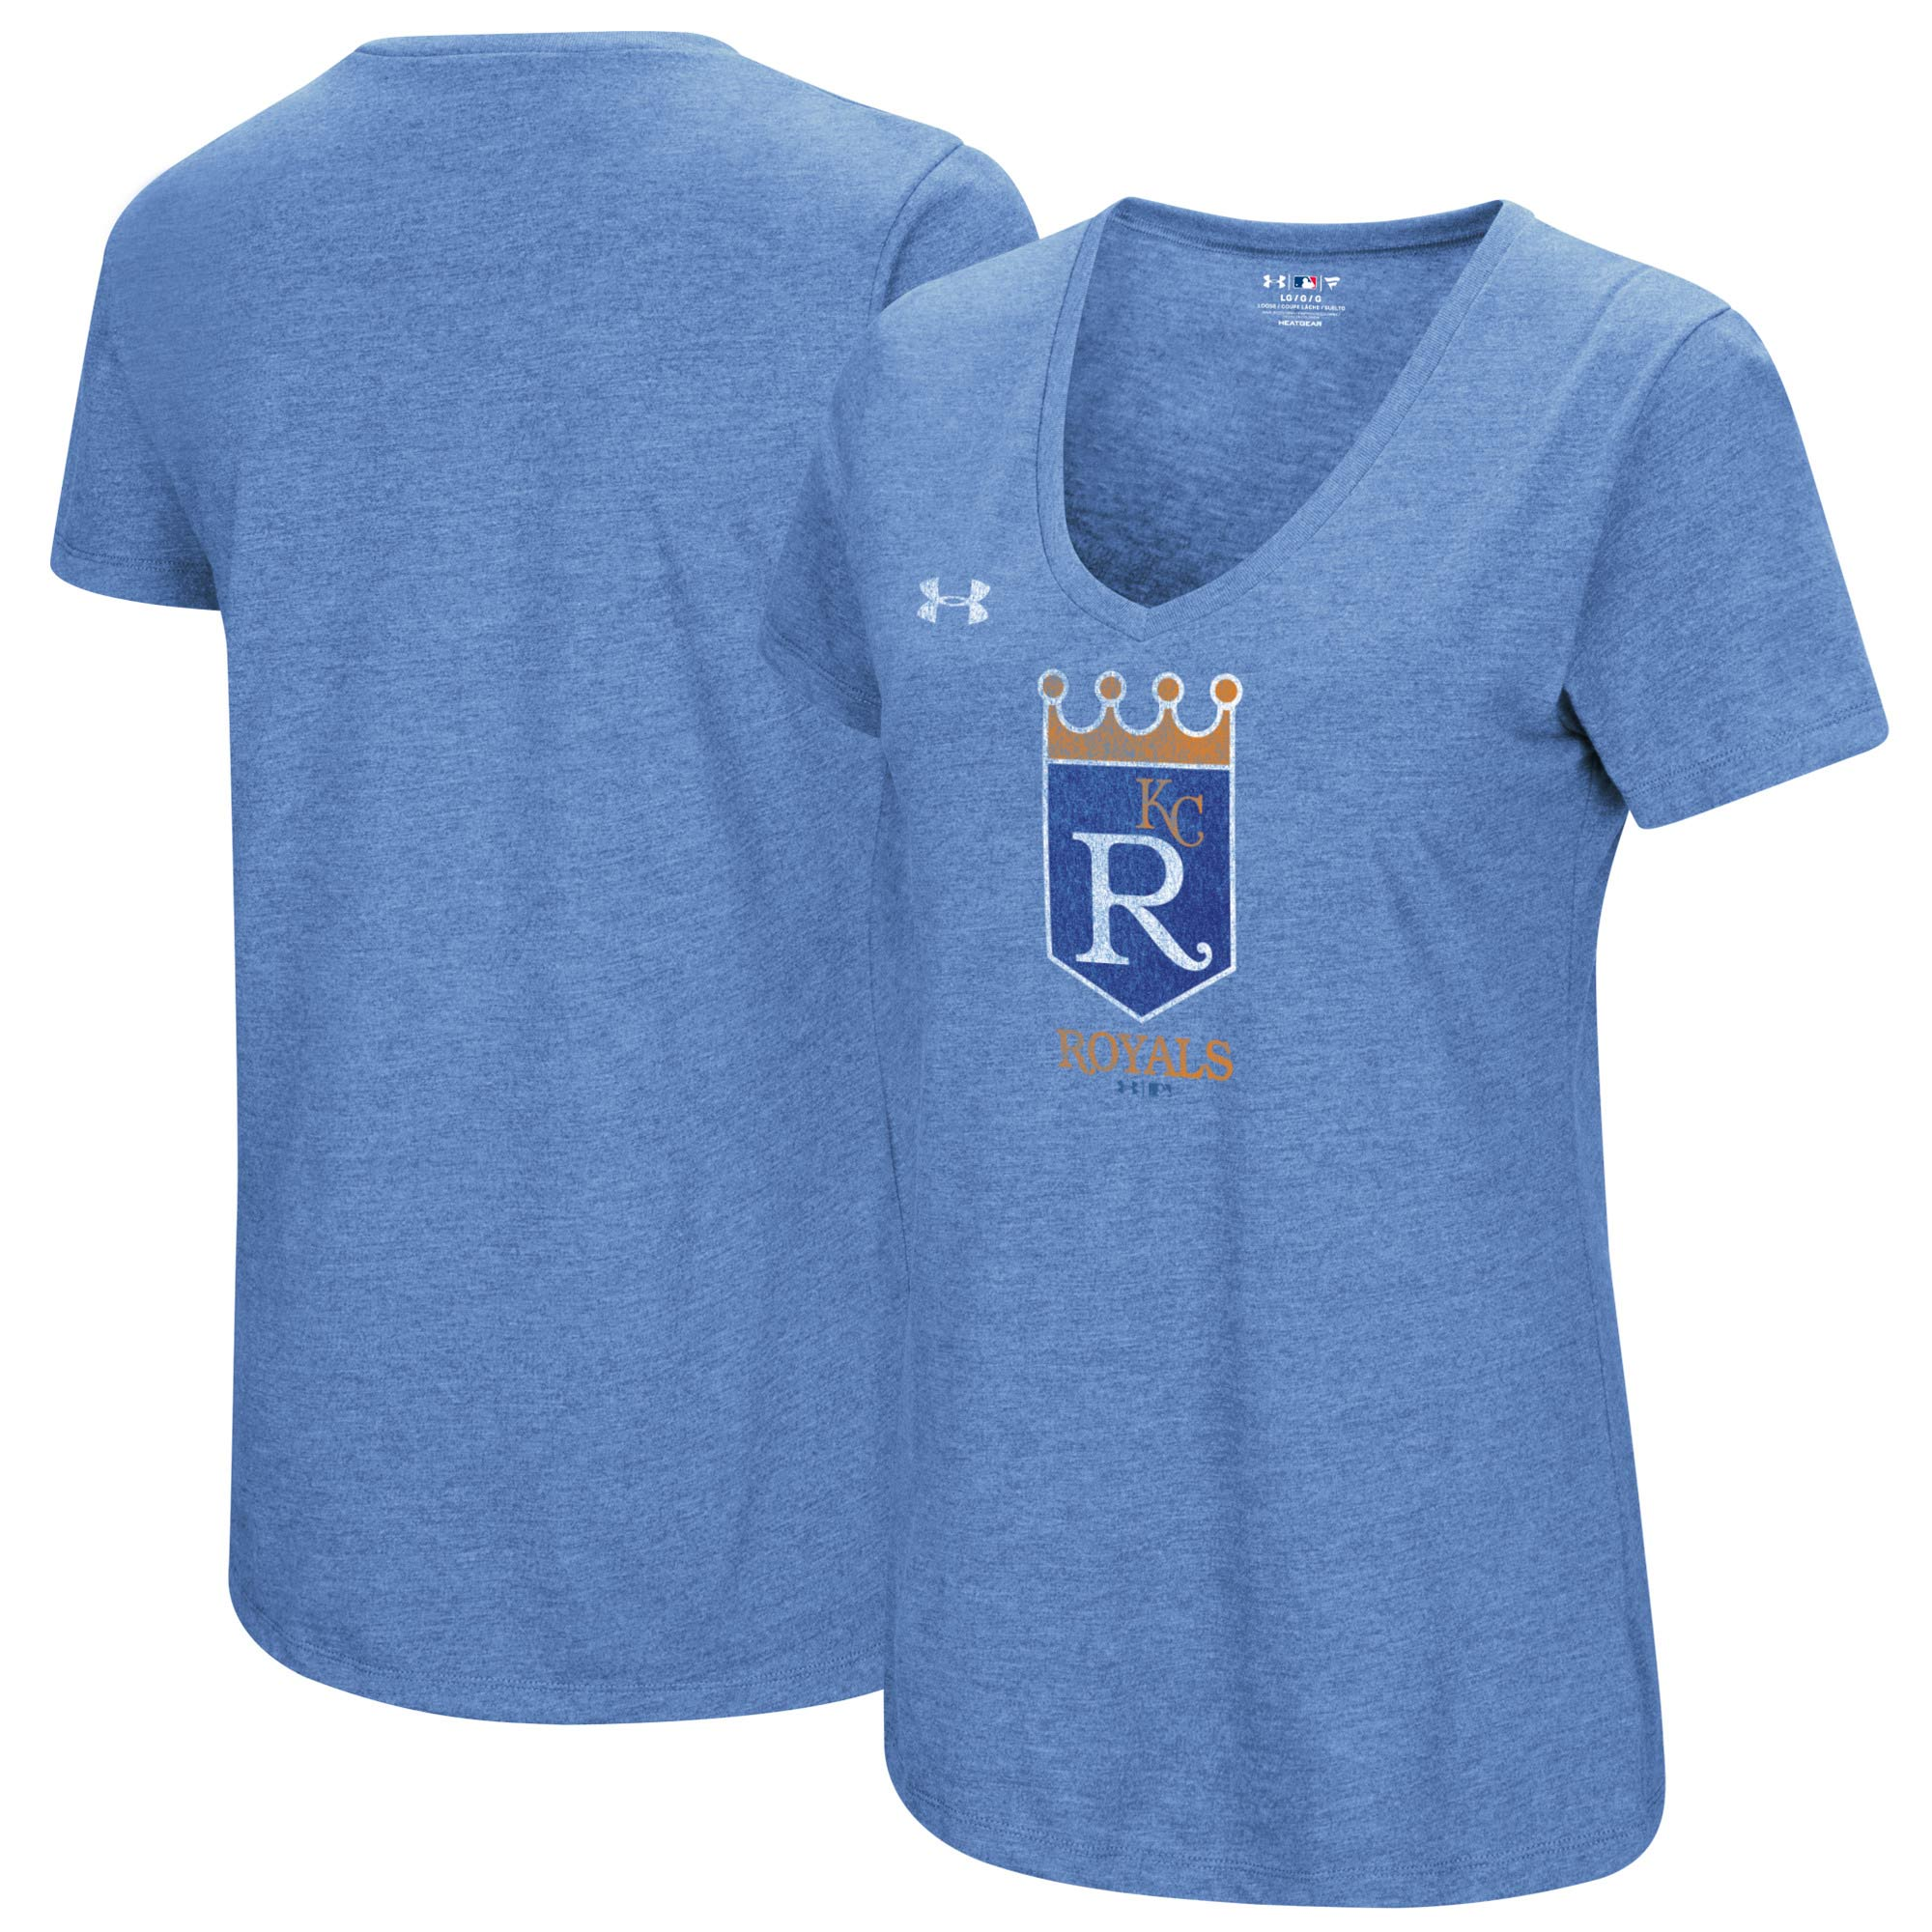 Kansas City Royals Under Armour Women's Cooperstown Collection Logo Performance Tri-Blend V-Neck T-Shirt - Heathered Light Blue